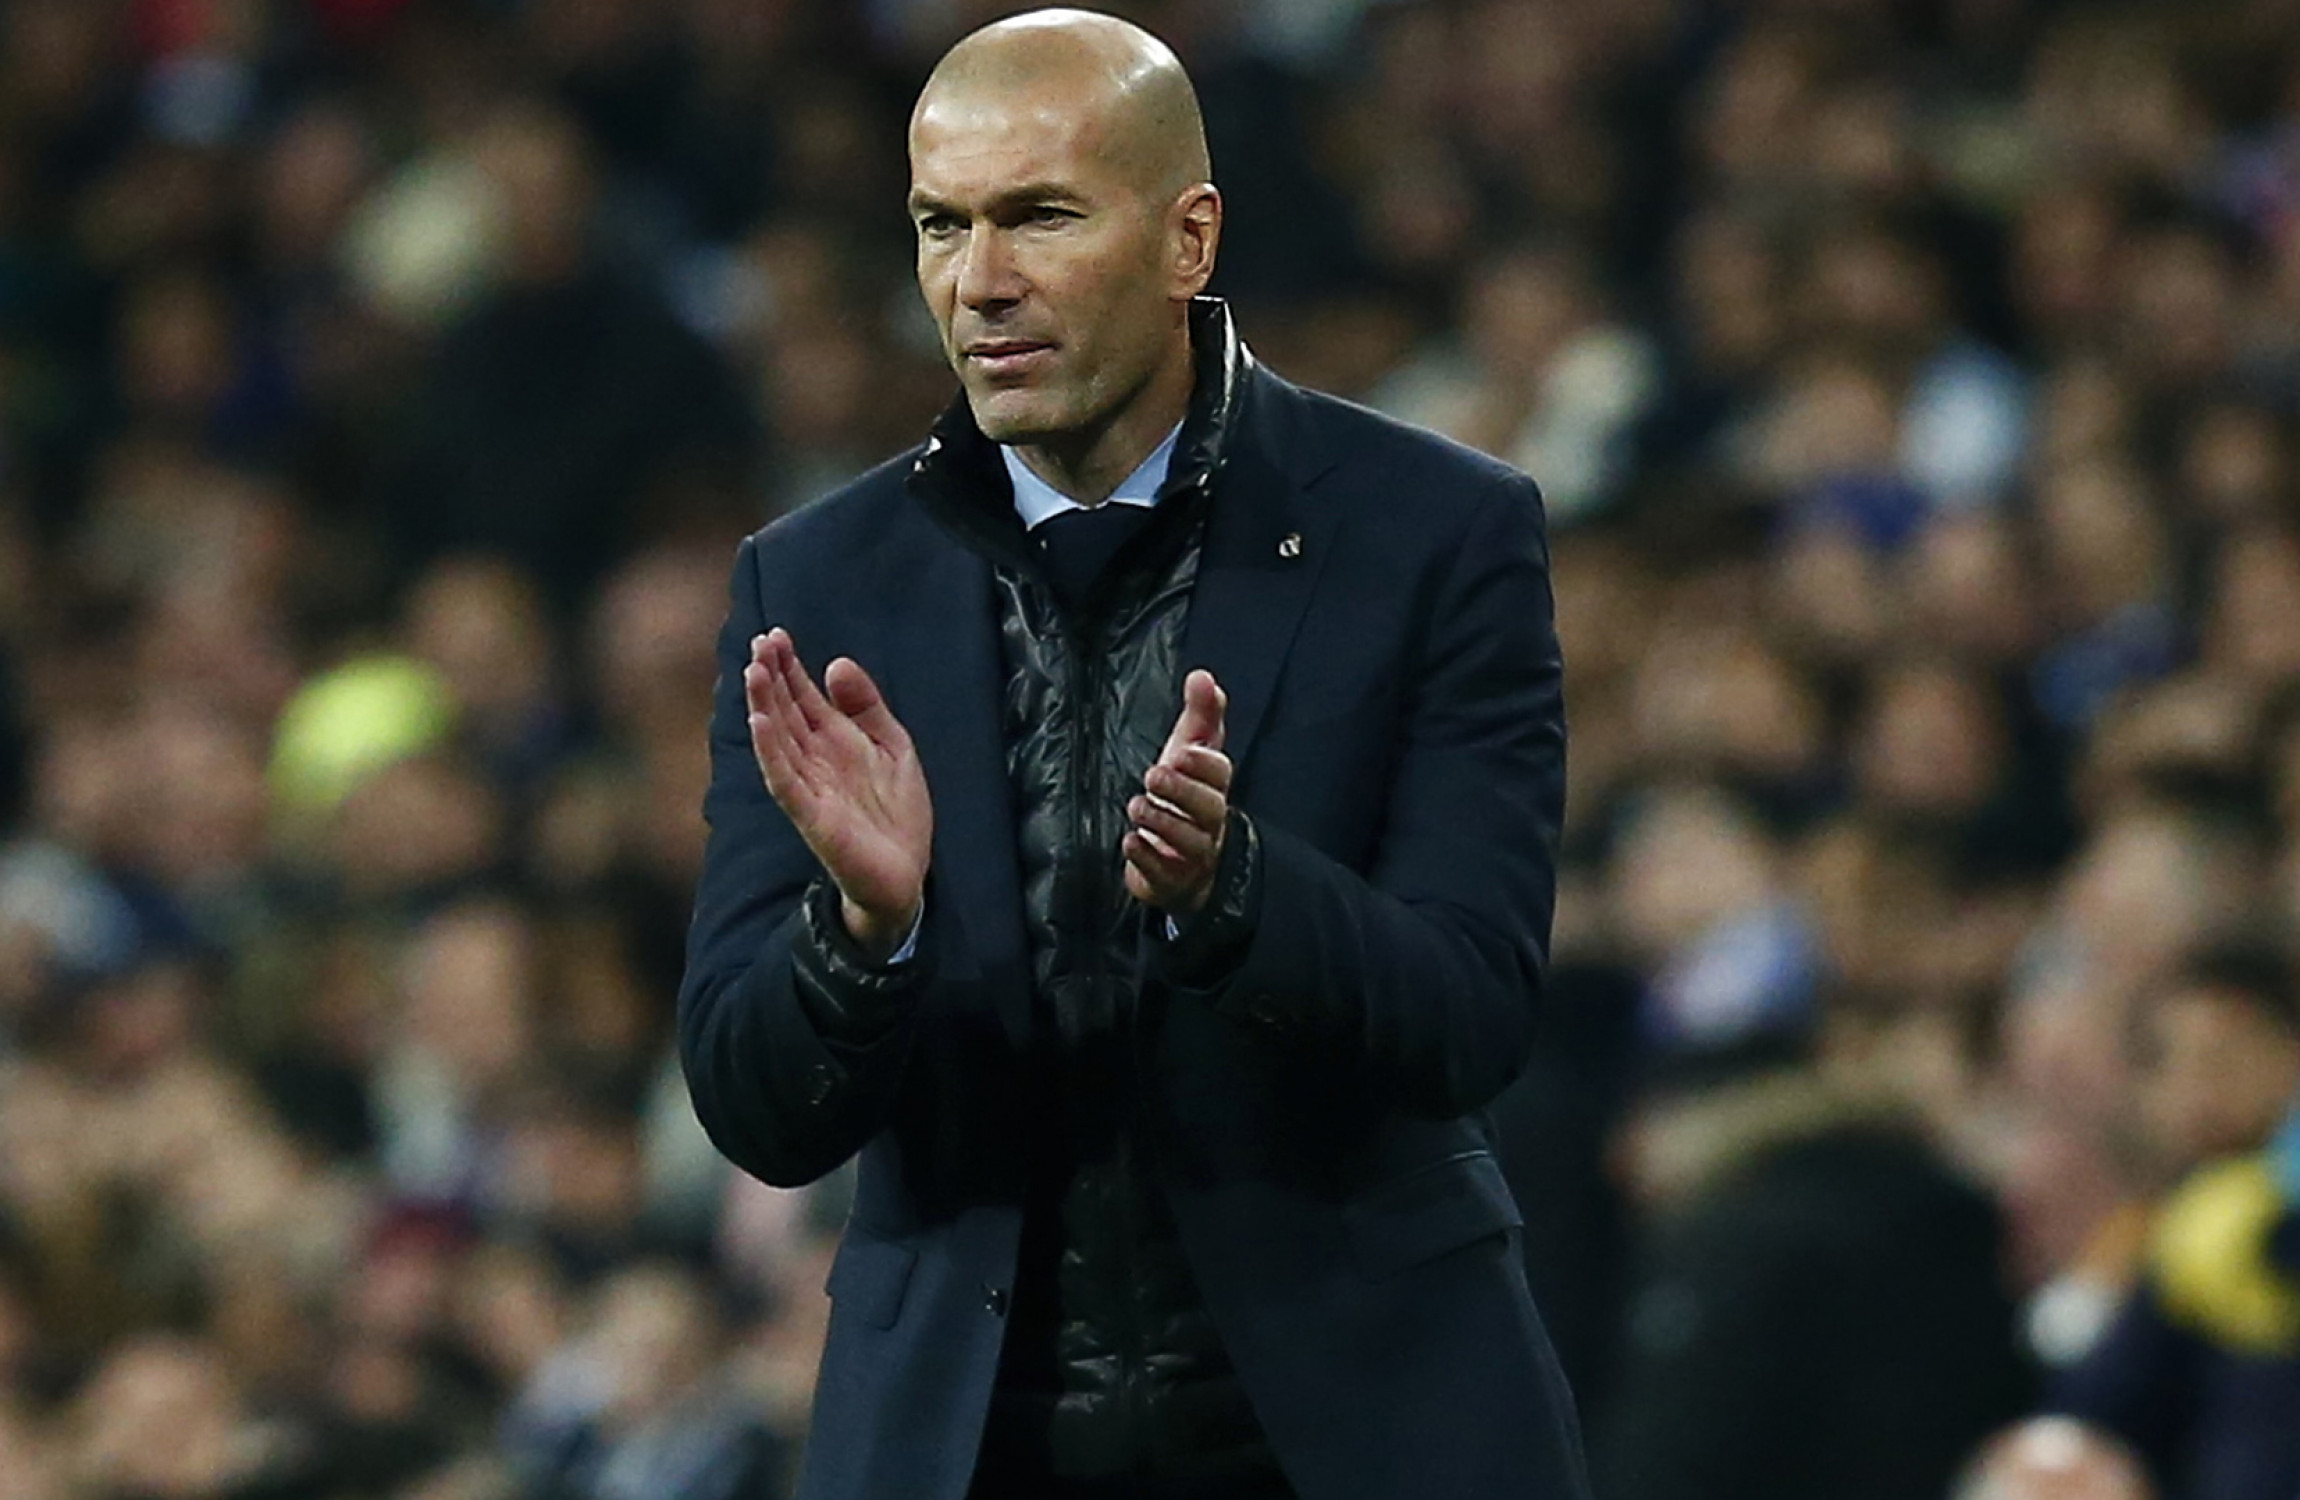 Zidane says Real Madrid played an